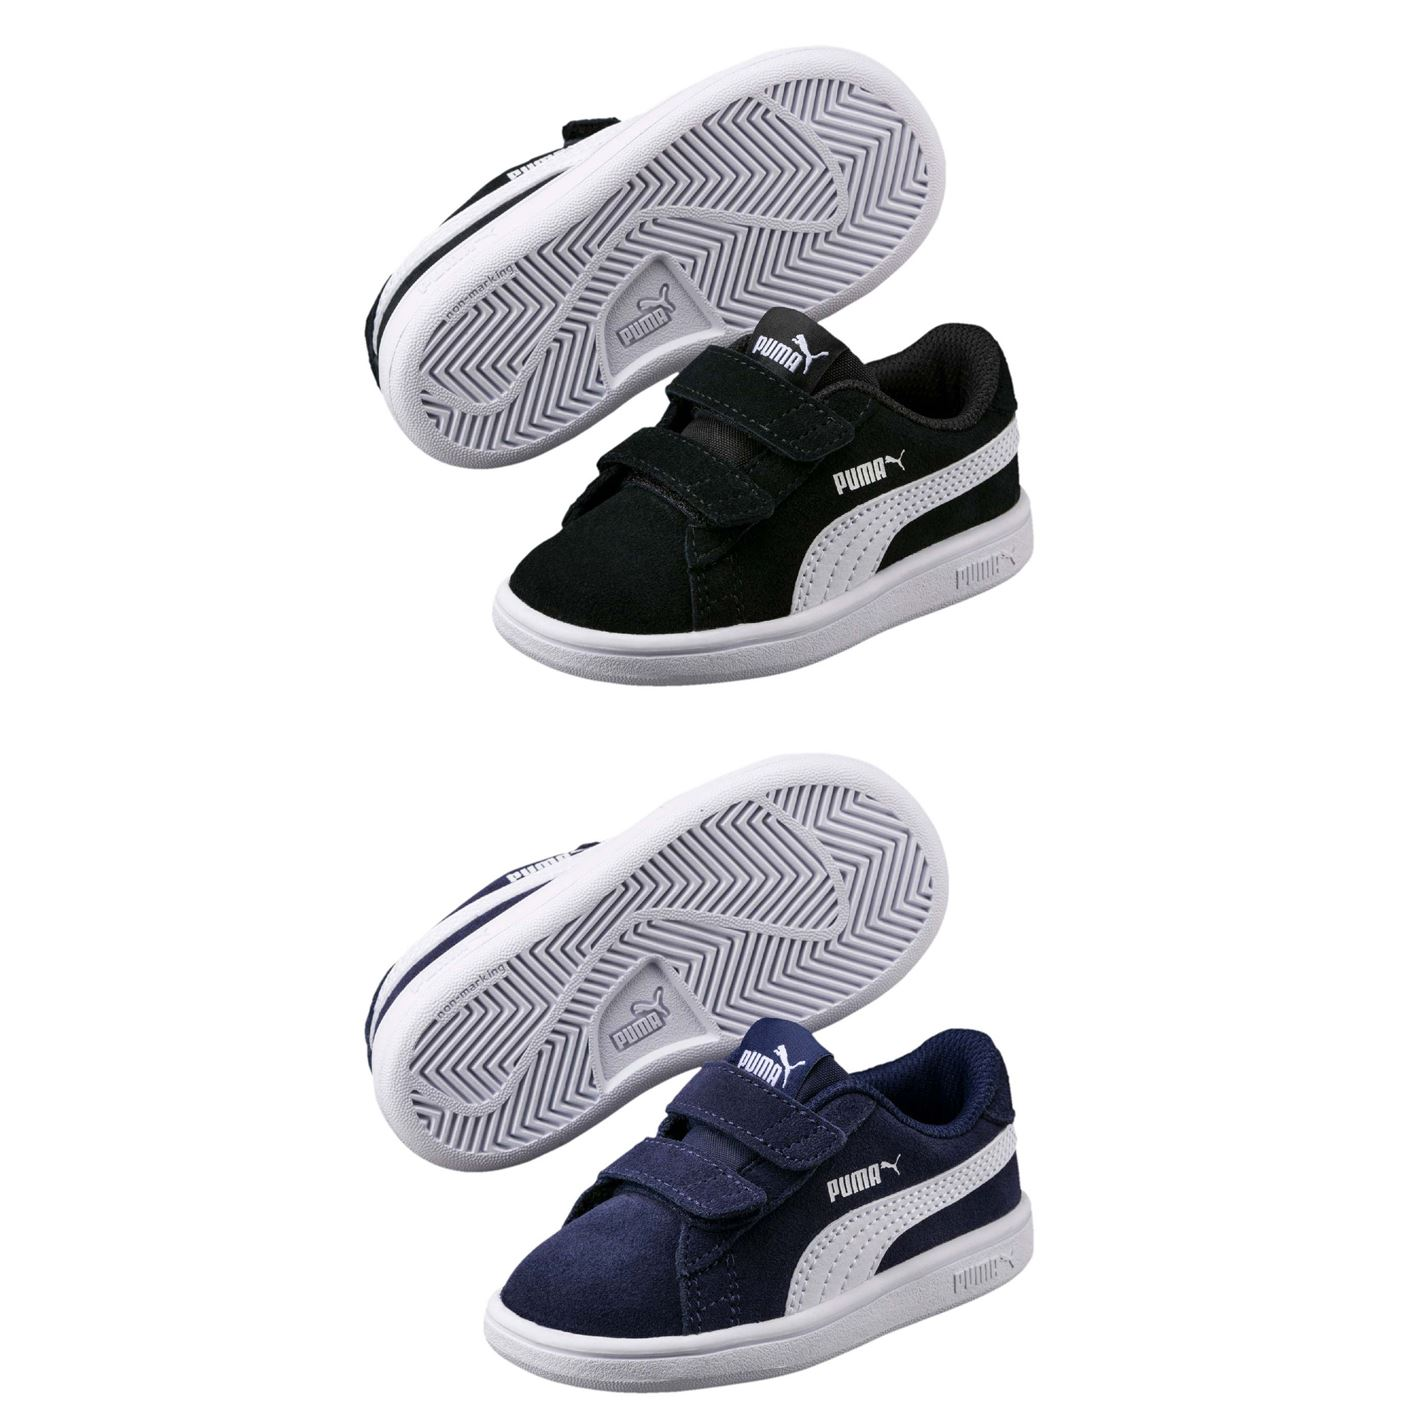 Details about Puma Smash Suede Child Boys Trainers Shoes Footwear